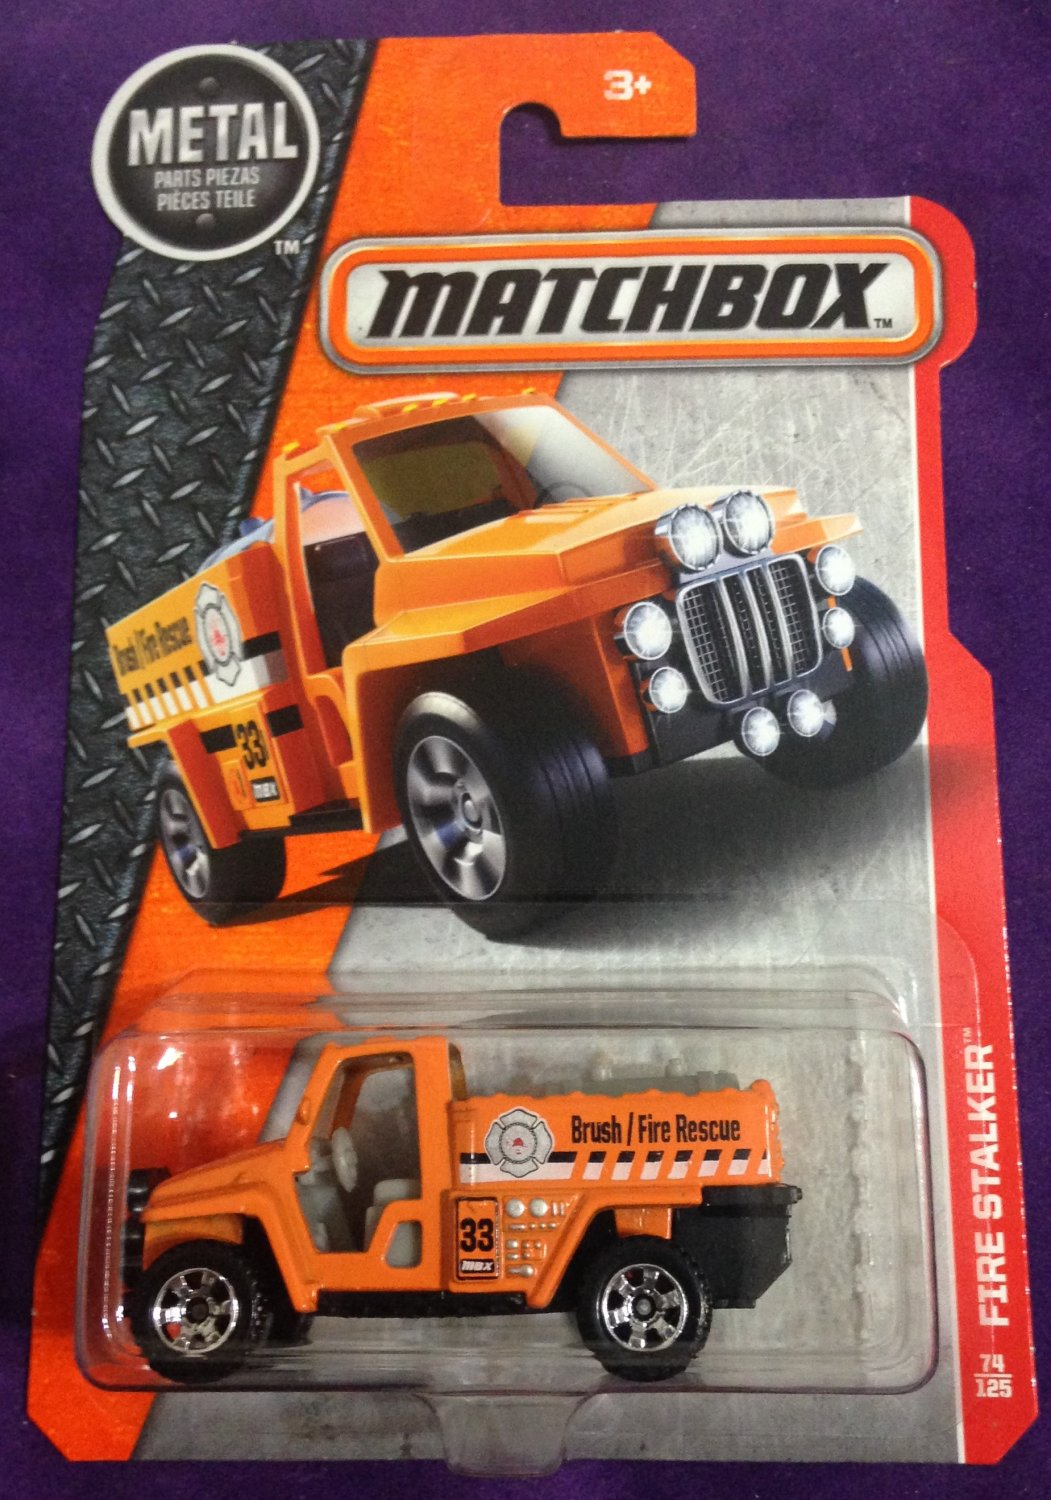 2017 Matchbox #74 Firestalker